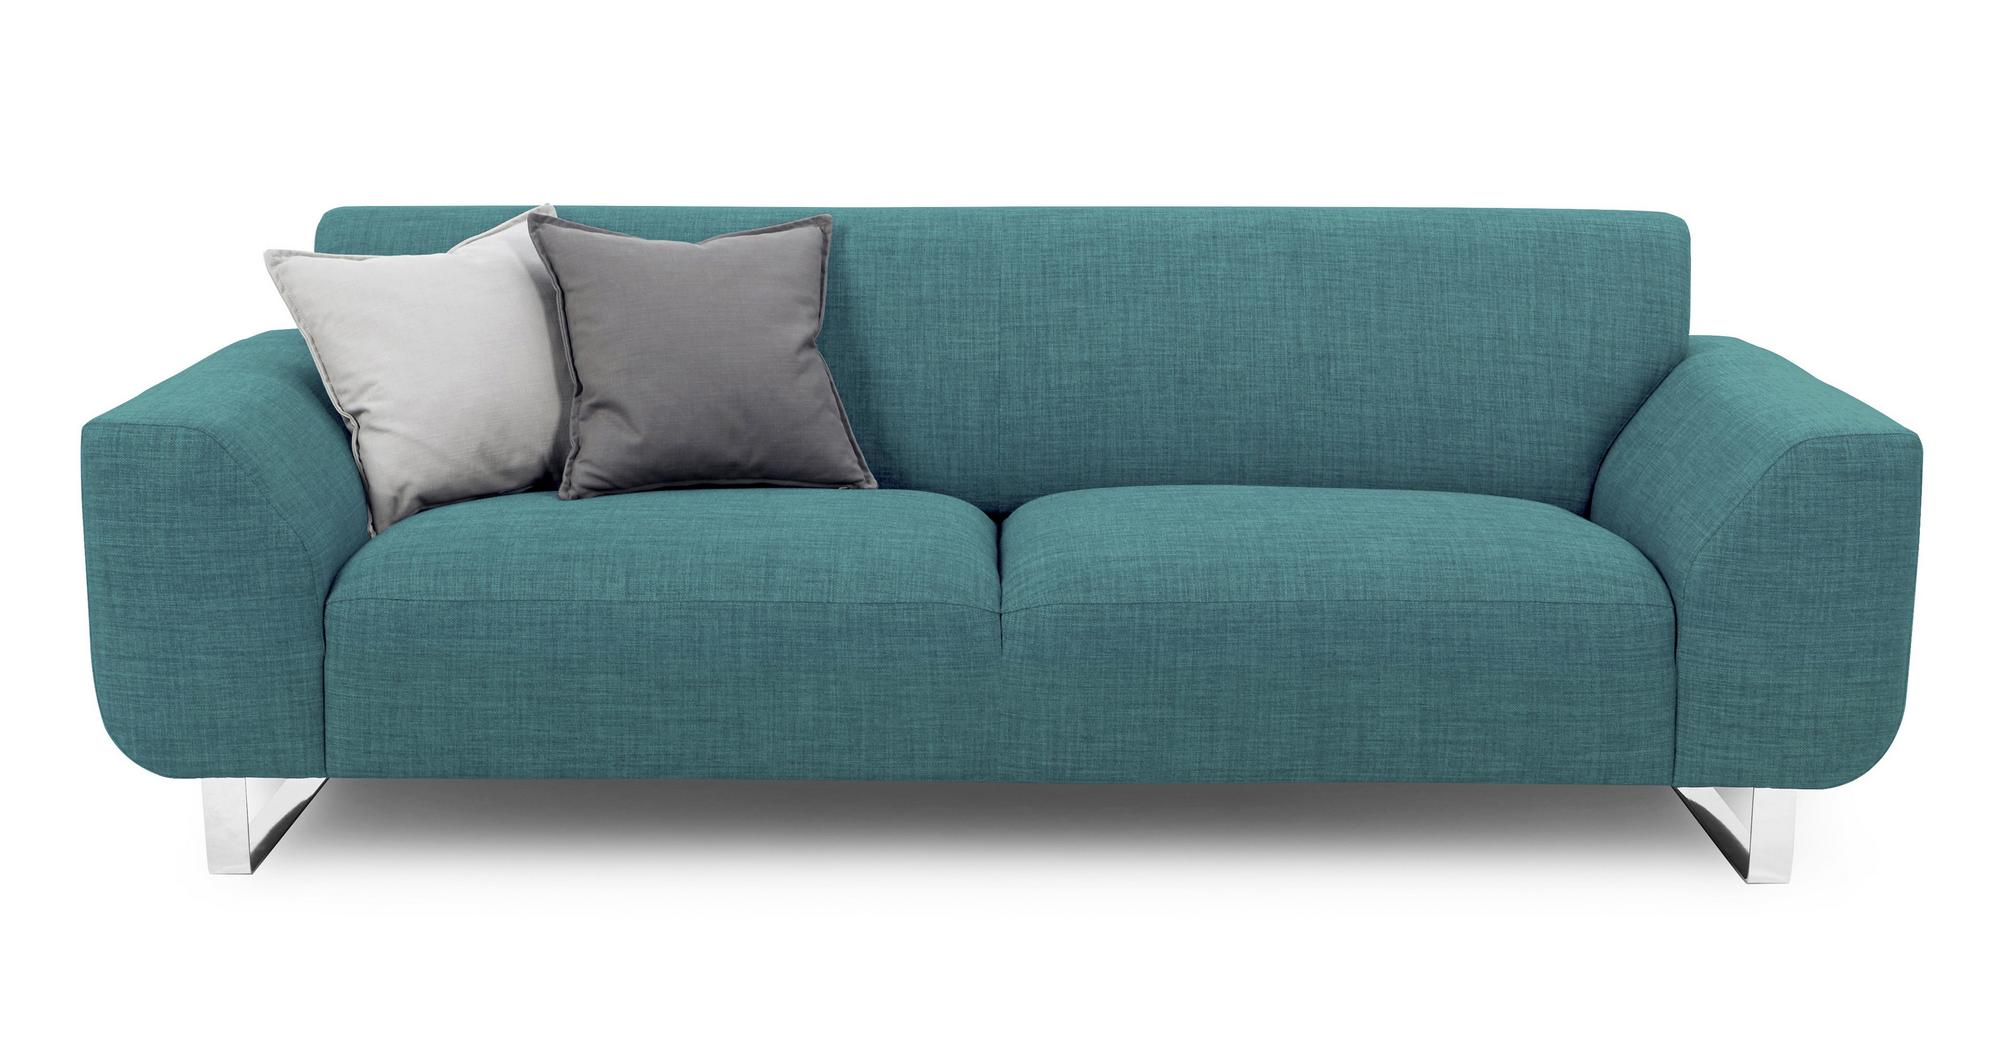 DFS Hardy Teal Fabric 3 Seater Sofa